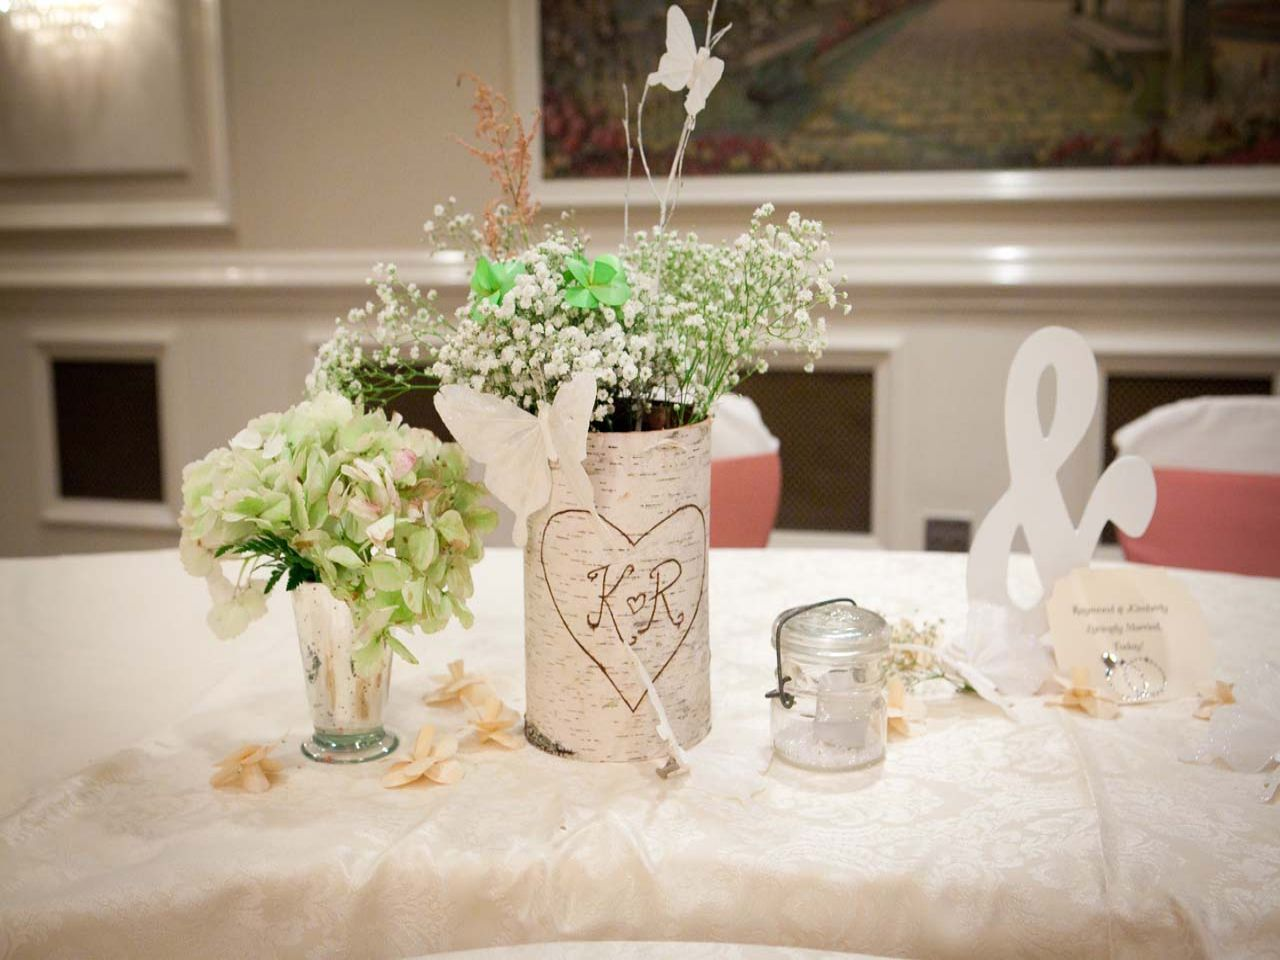 Wedding Table Table Decorations Ideas For Weddings diy wedding table decorations decorations